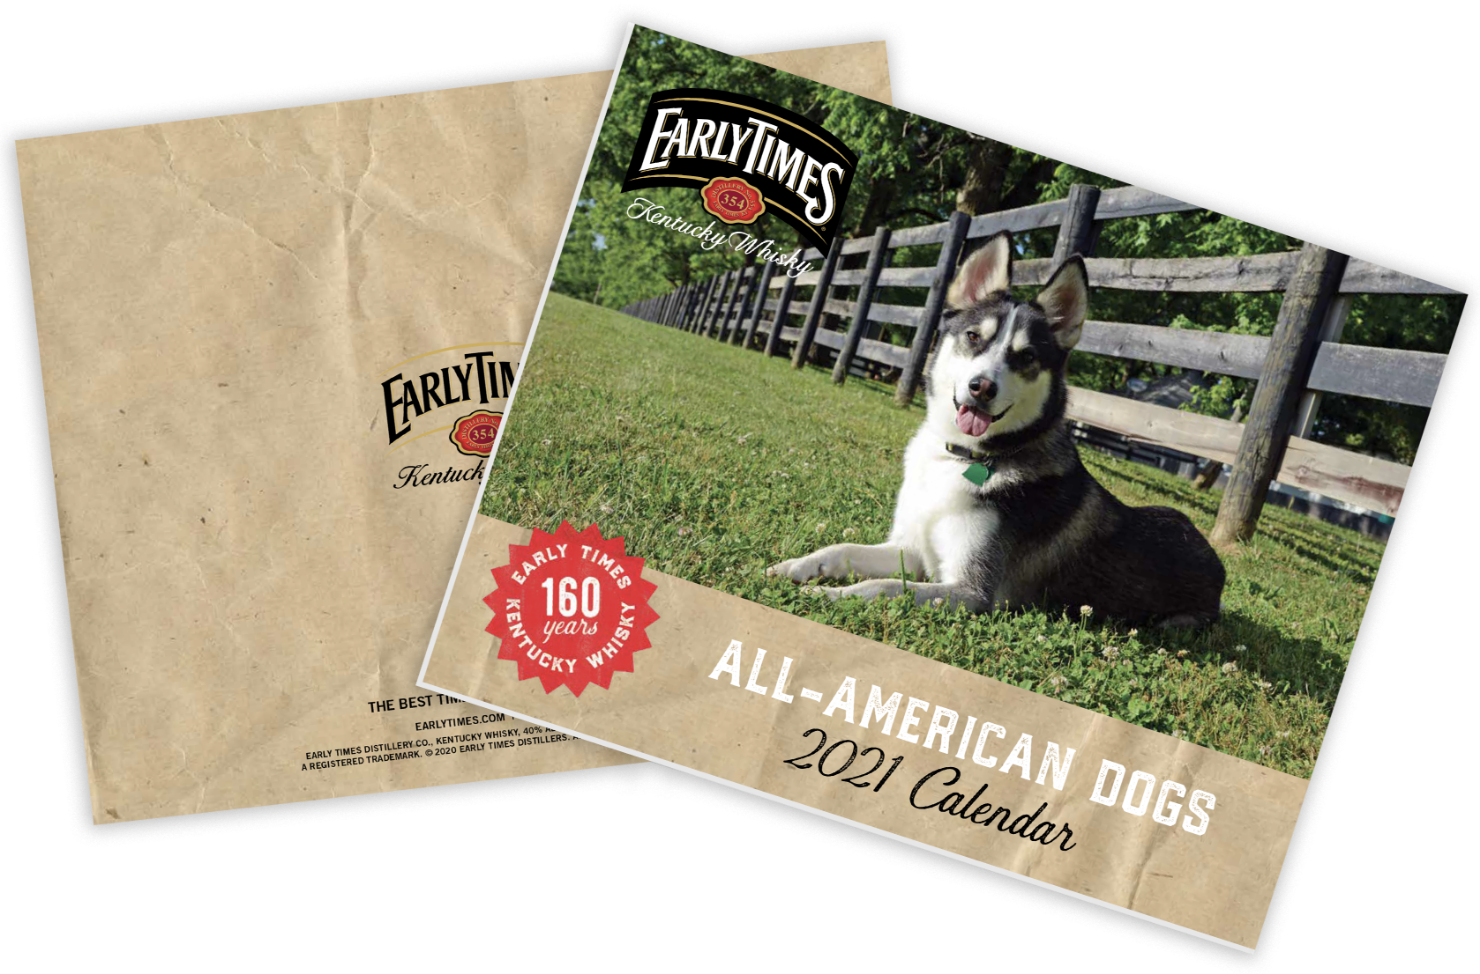 Our All American Dogs calendar celebrates American whiskey and our All American dogs contest winners.